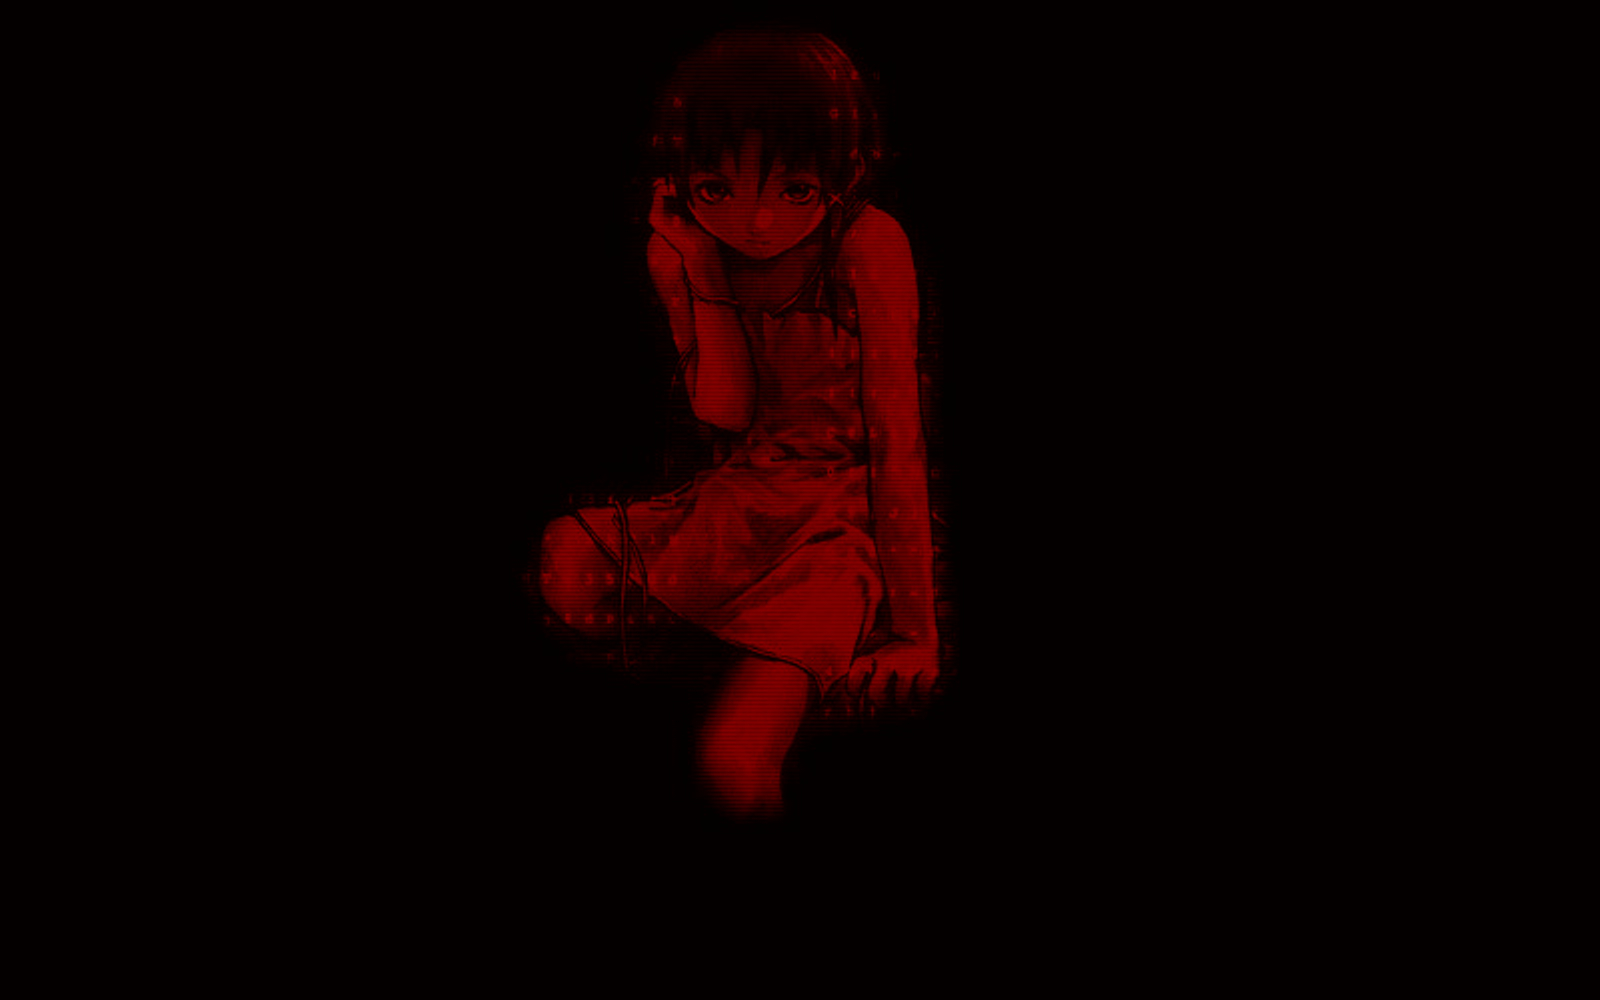 serial experiments lain Anime